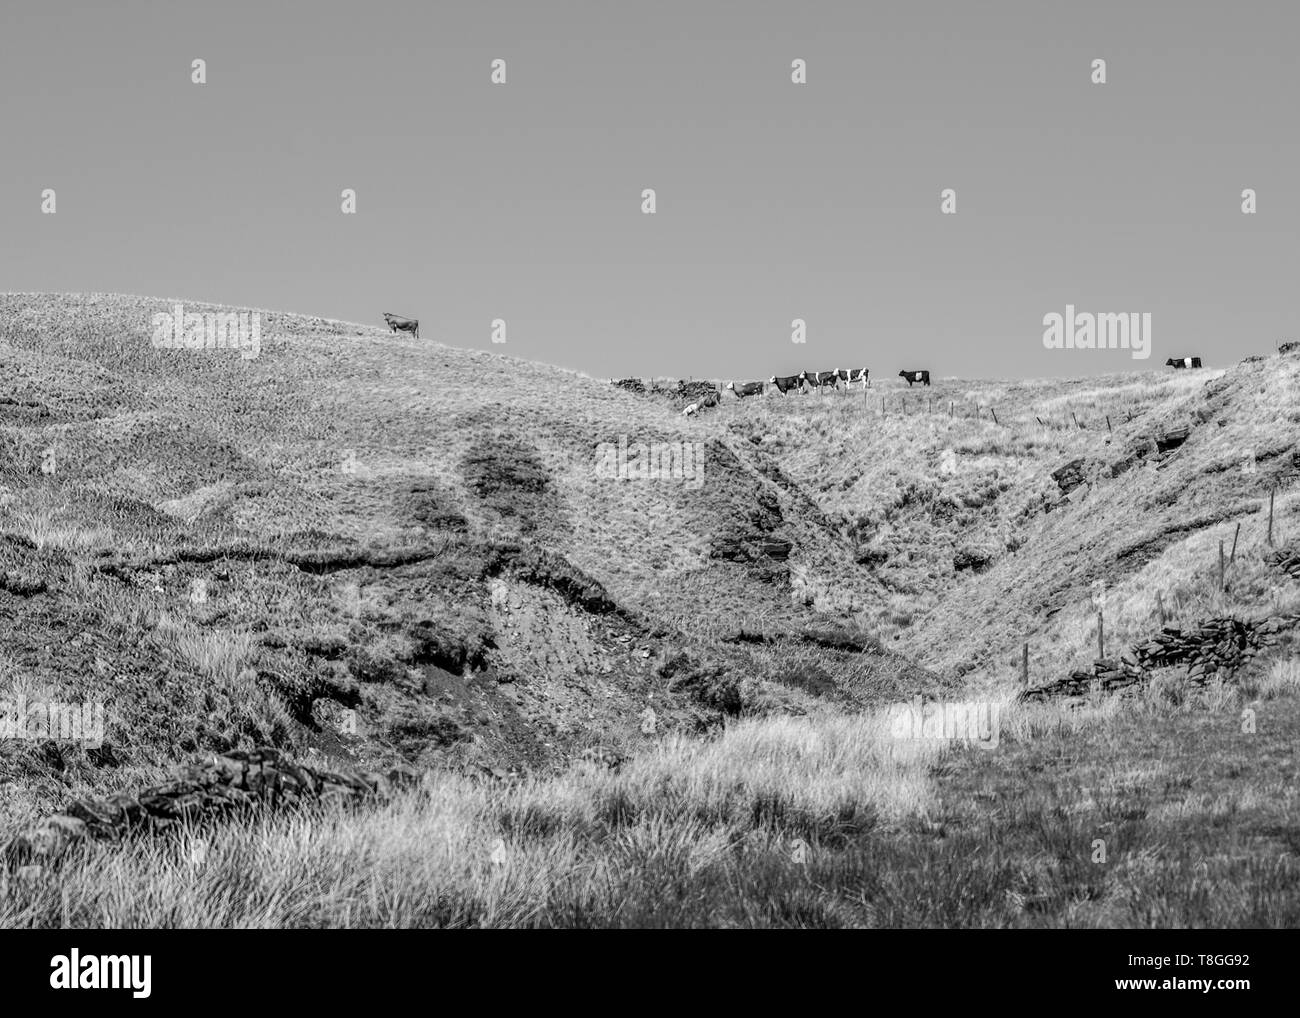 A black and white landscape view of the yorkshire moors against a sunny day